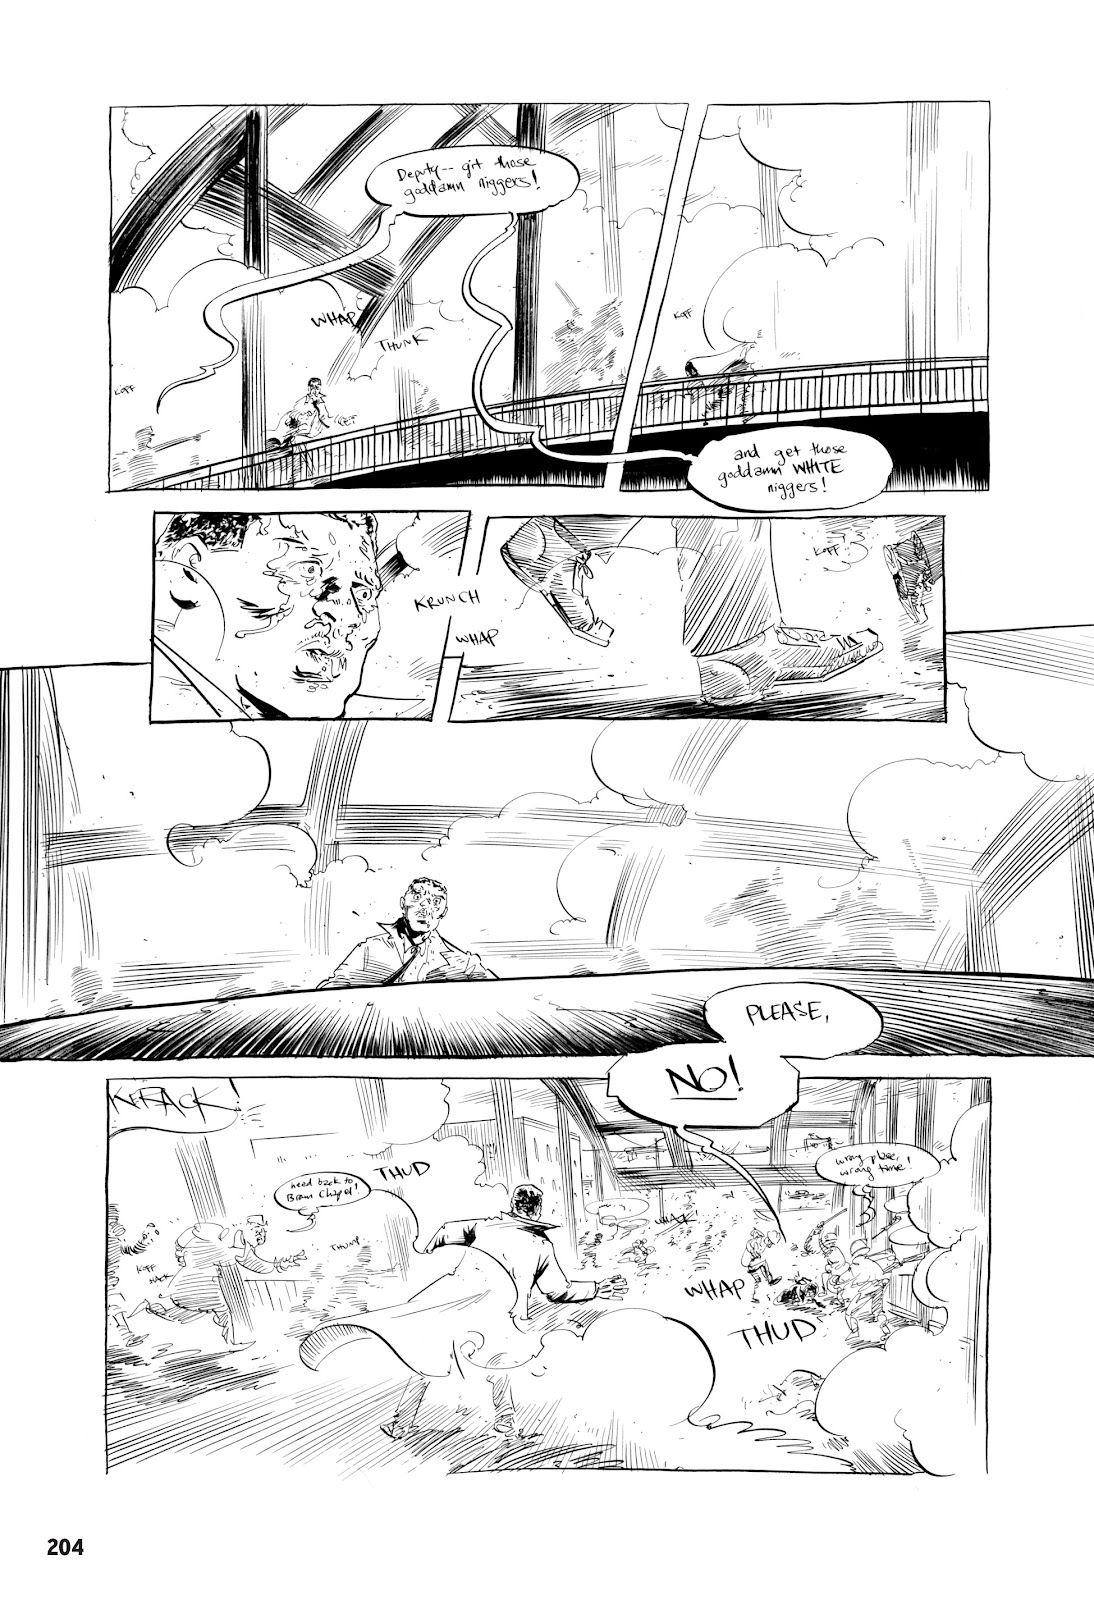 March 3 Page 198